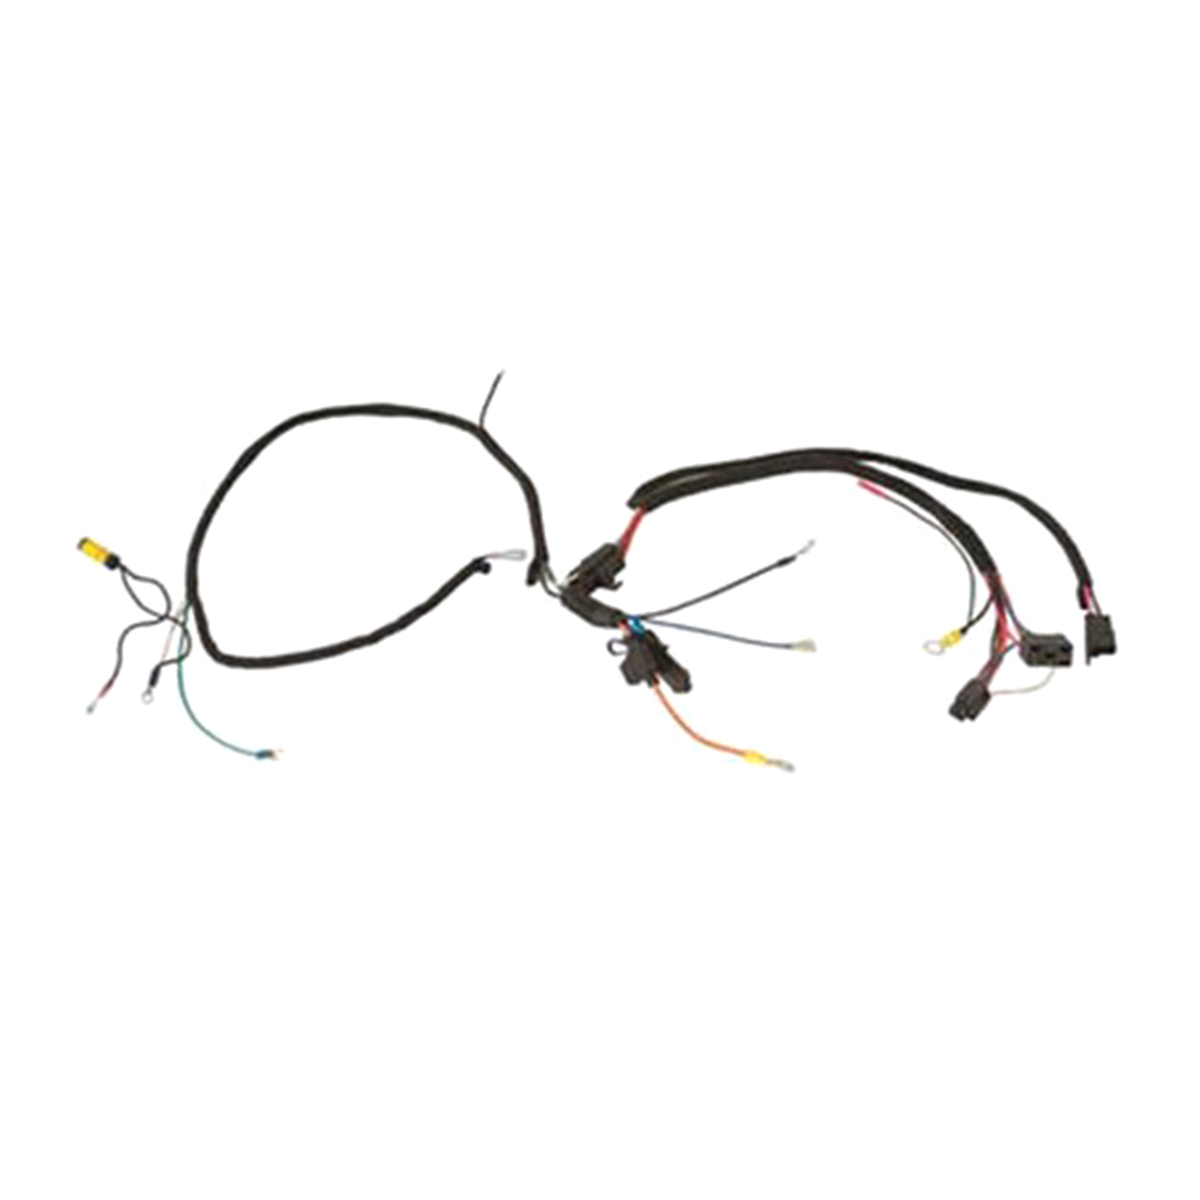 wiring harnesses for dixie chopper lawn mowers